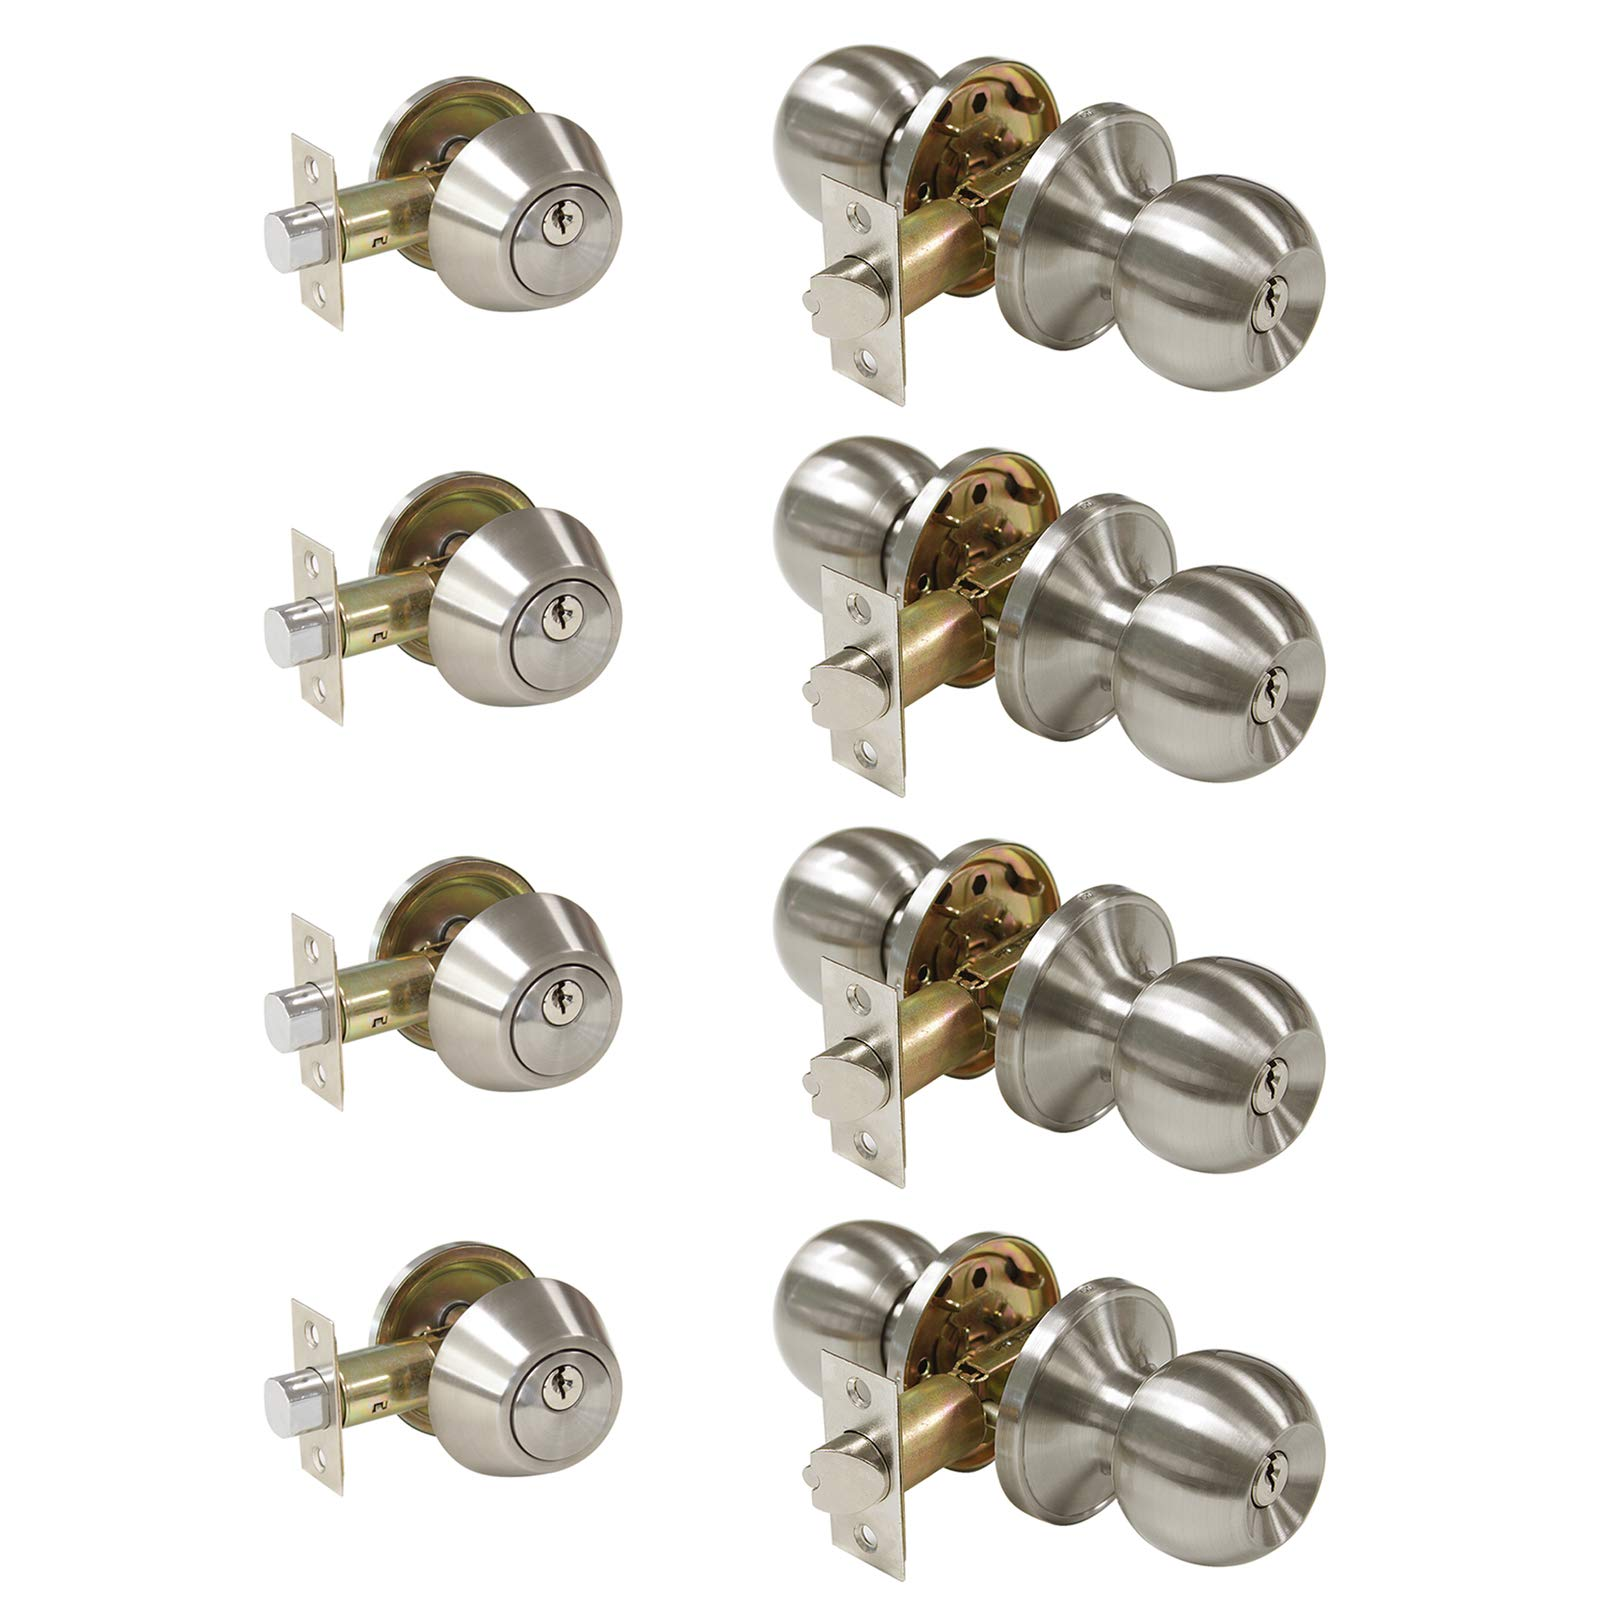 All Keyed Same Entry Door Knobs with Single Cylinder Deadbolt for Exterior Front Doors, Satin Nickel Finish, Keyed Alike for Every Set, Contractor Pack of 4